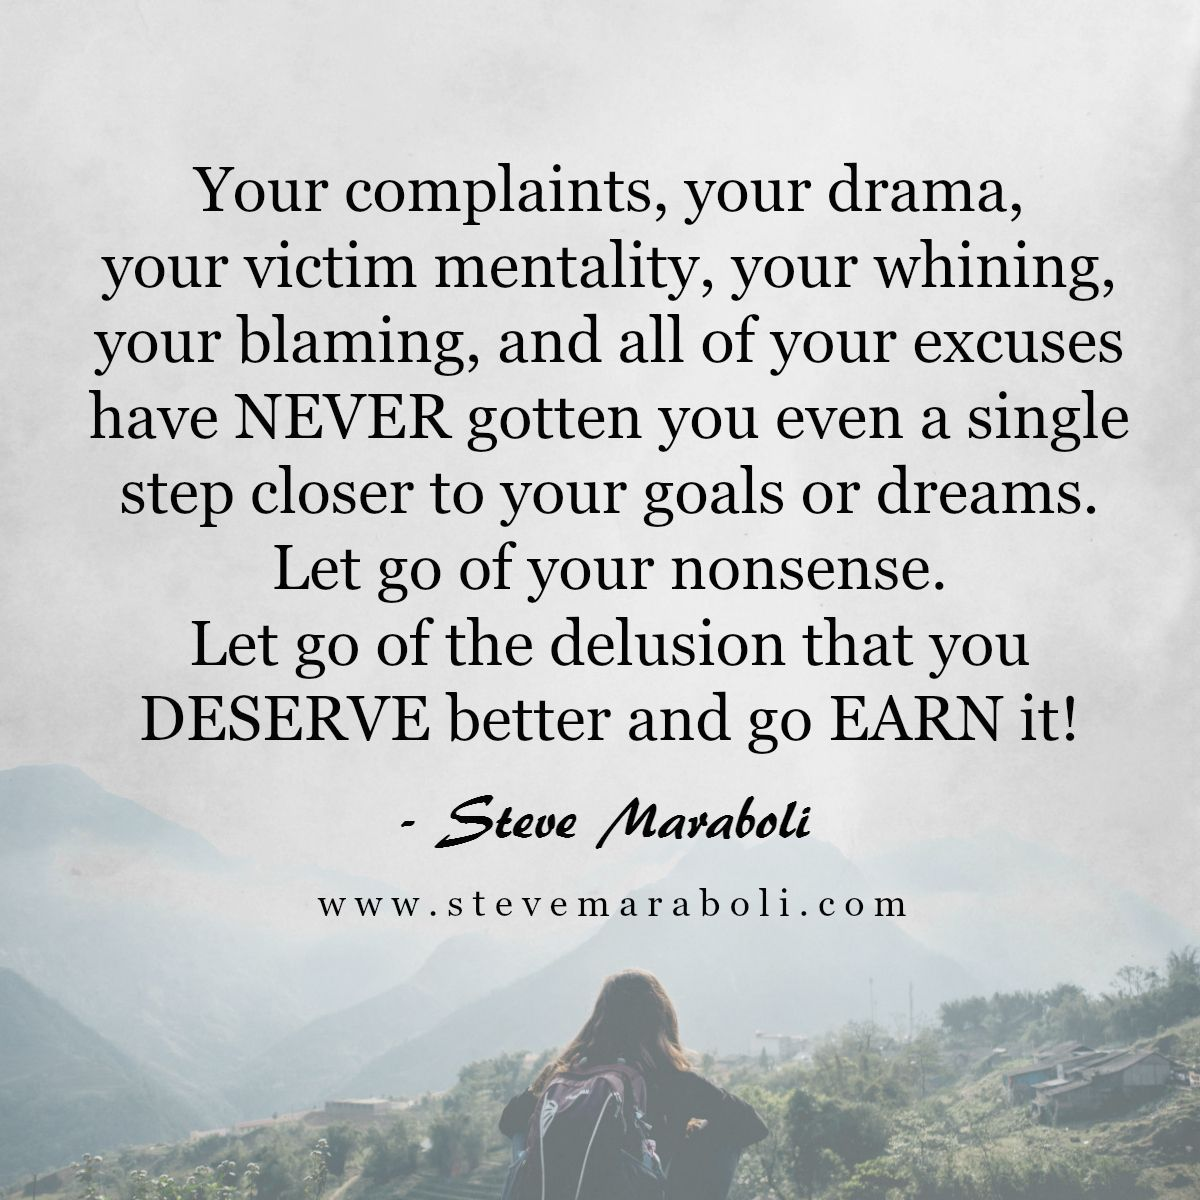 Your complaints, your drama, your victim mentality, your